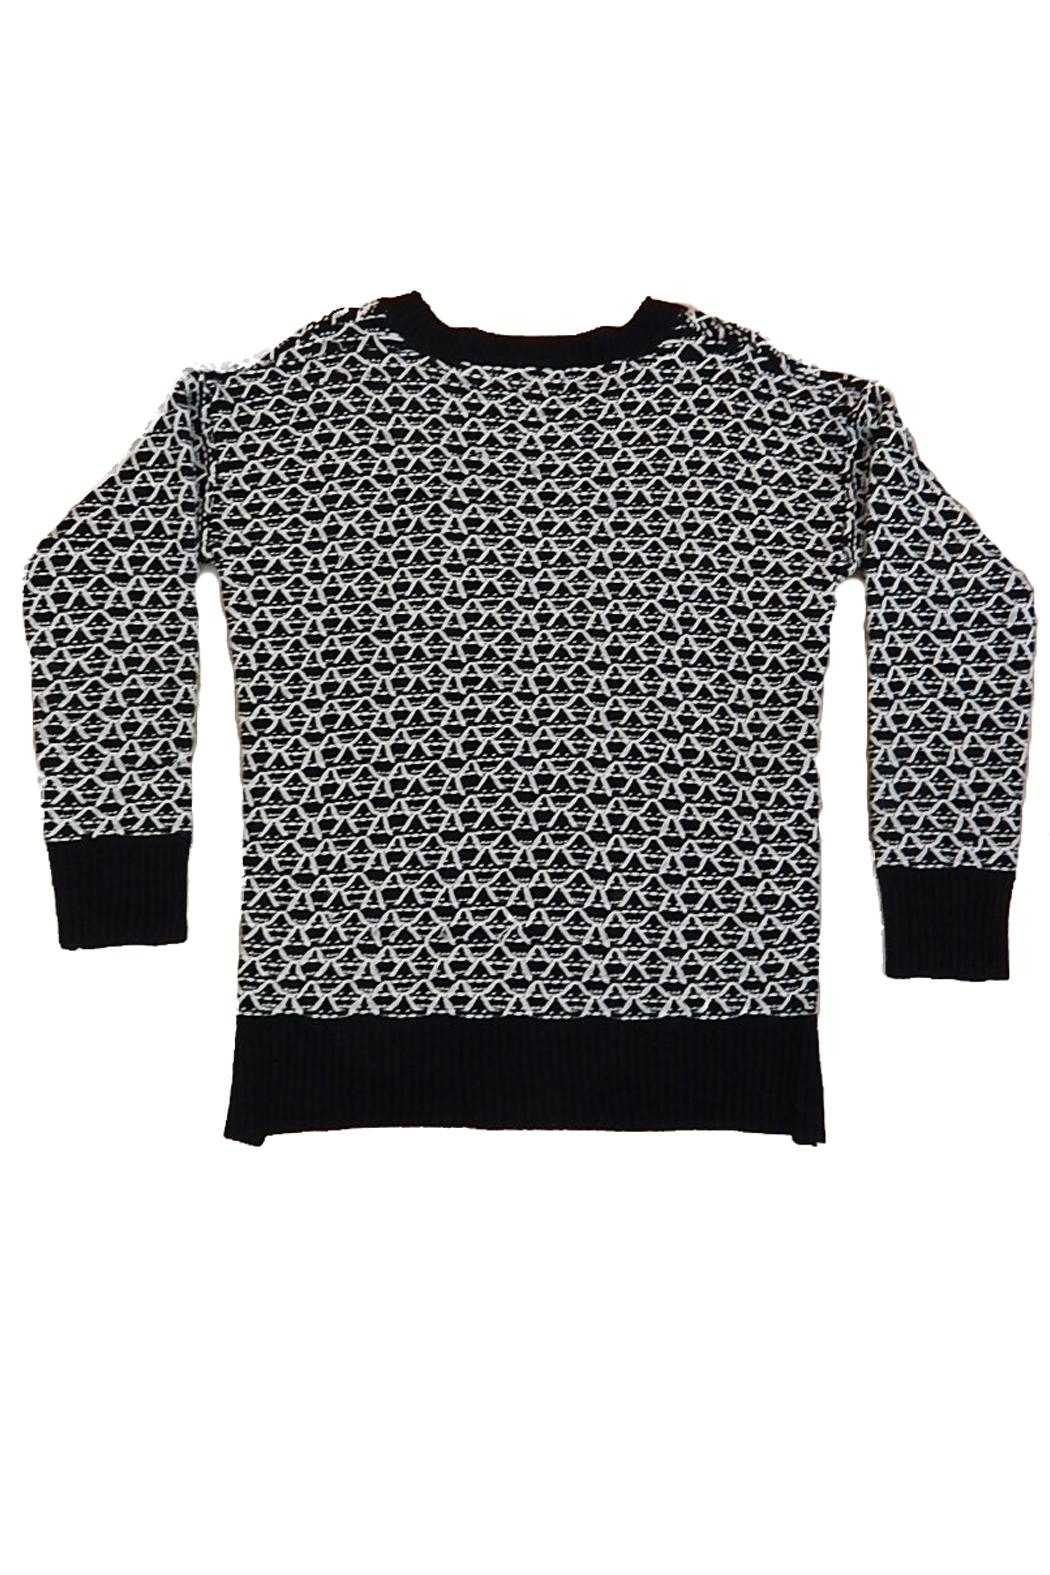 B.P. Collection Black White Sweater - Front Full Image